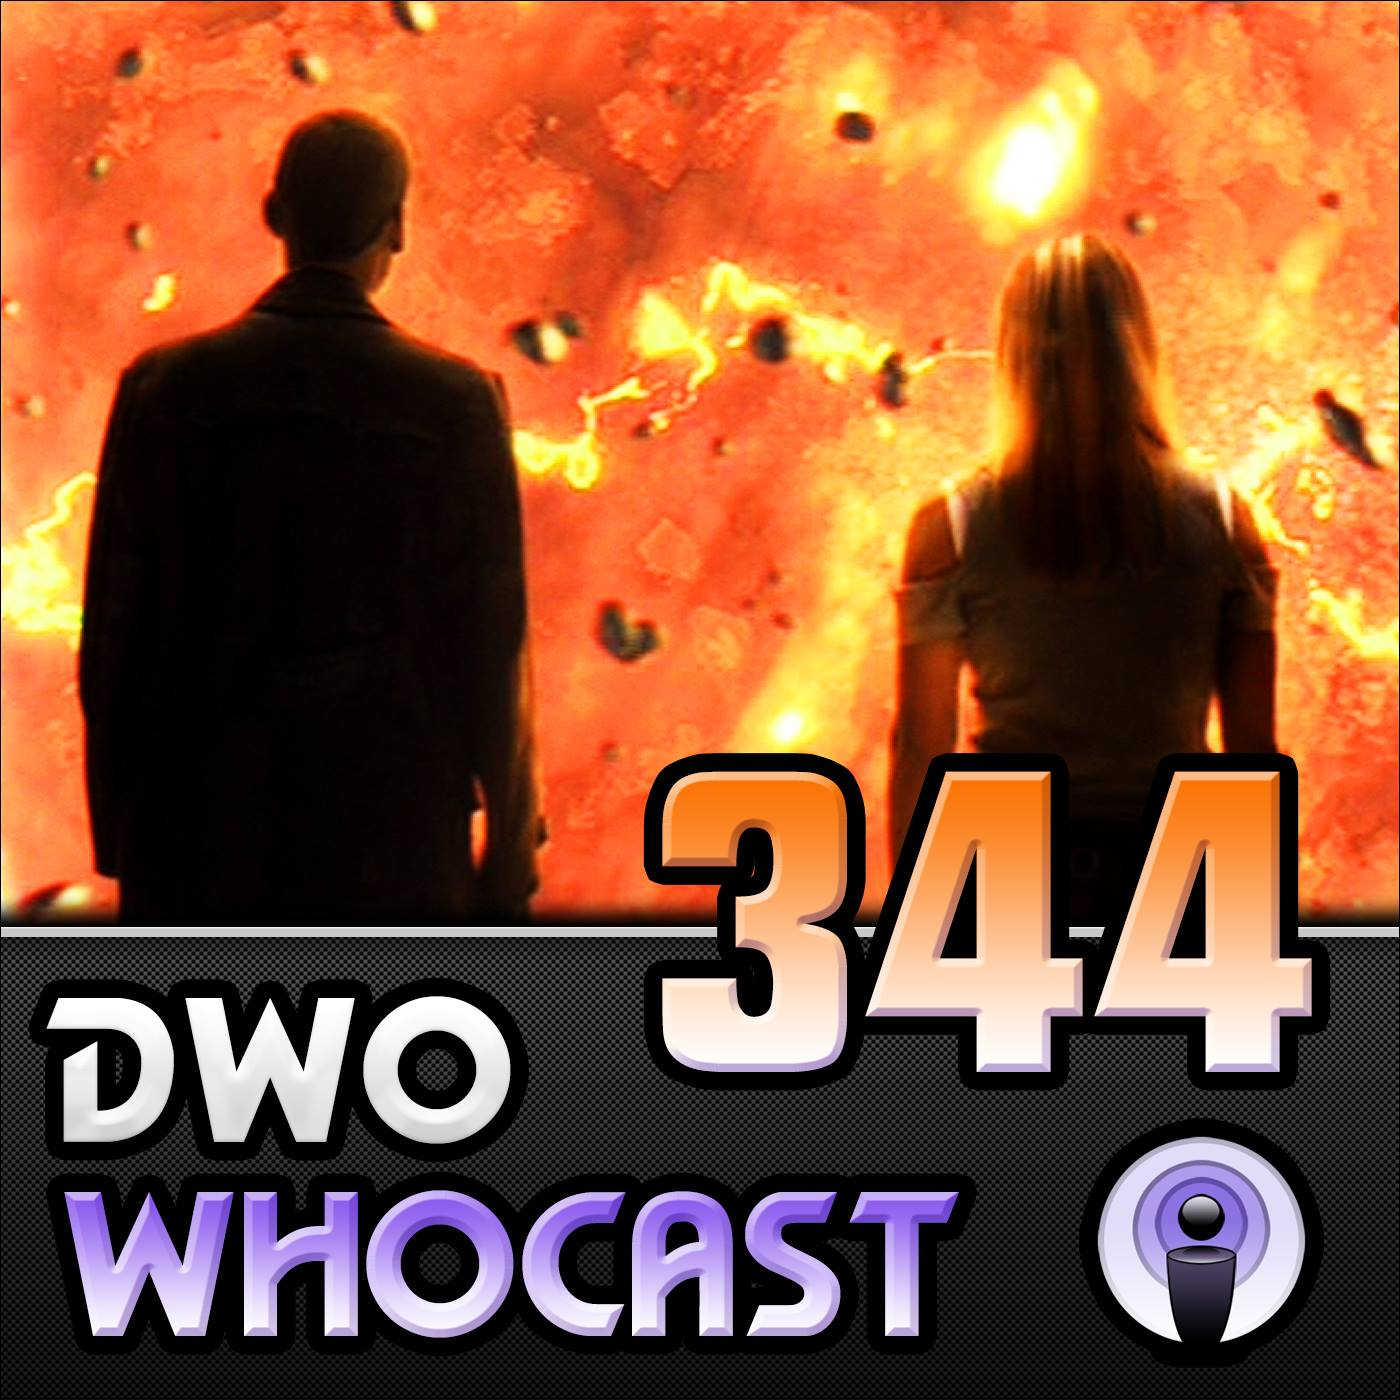 DWO WhoCast #344 - The Doctor Who Podcast